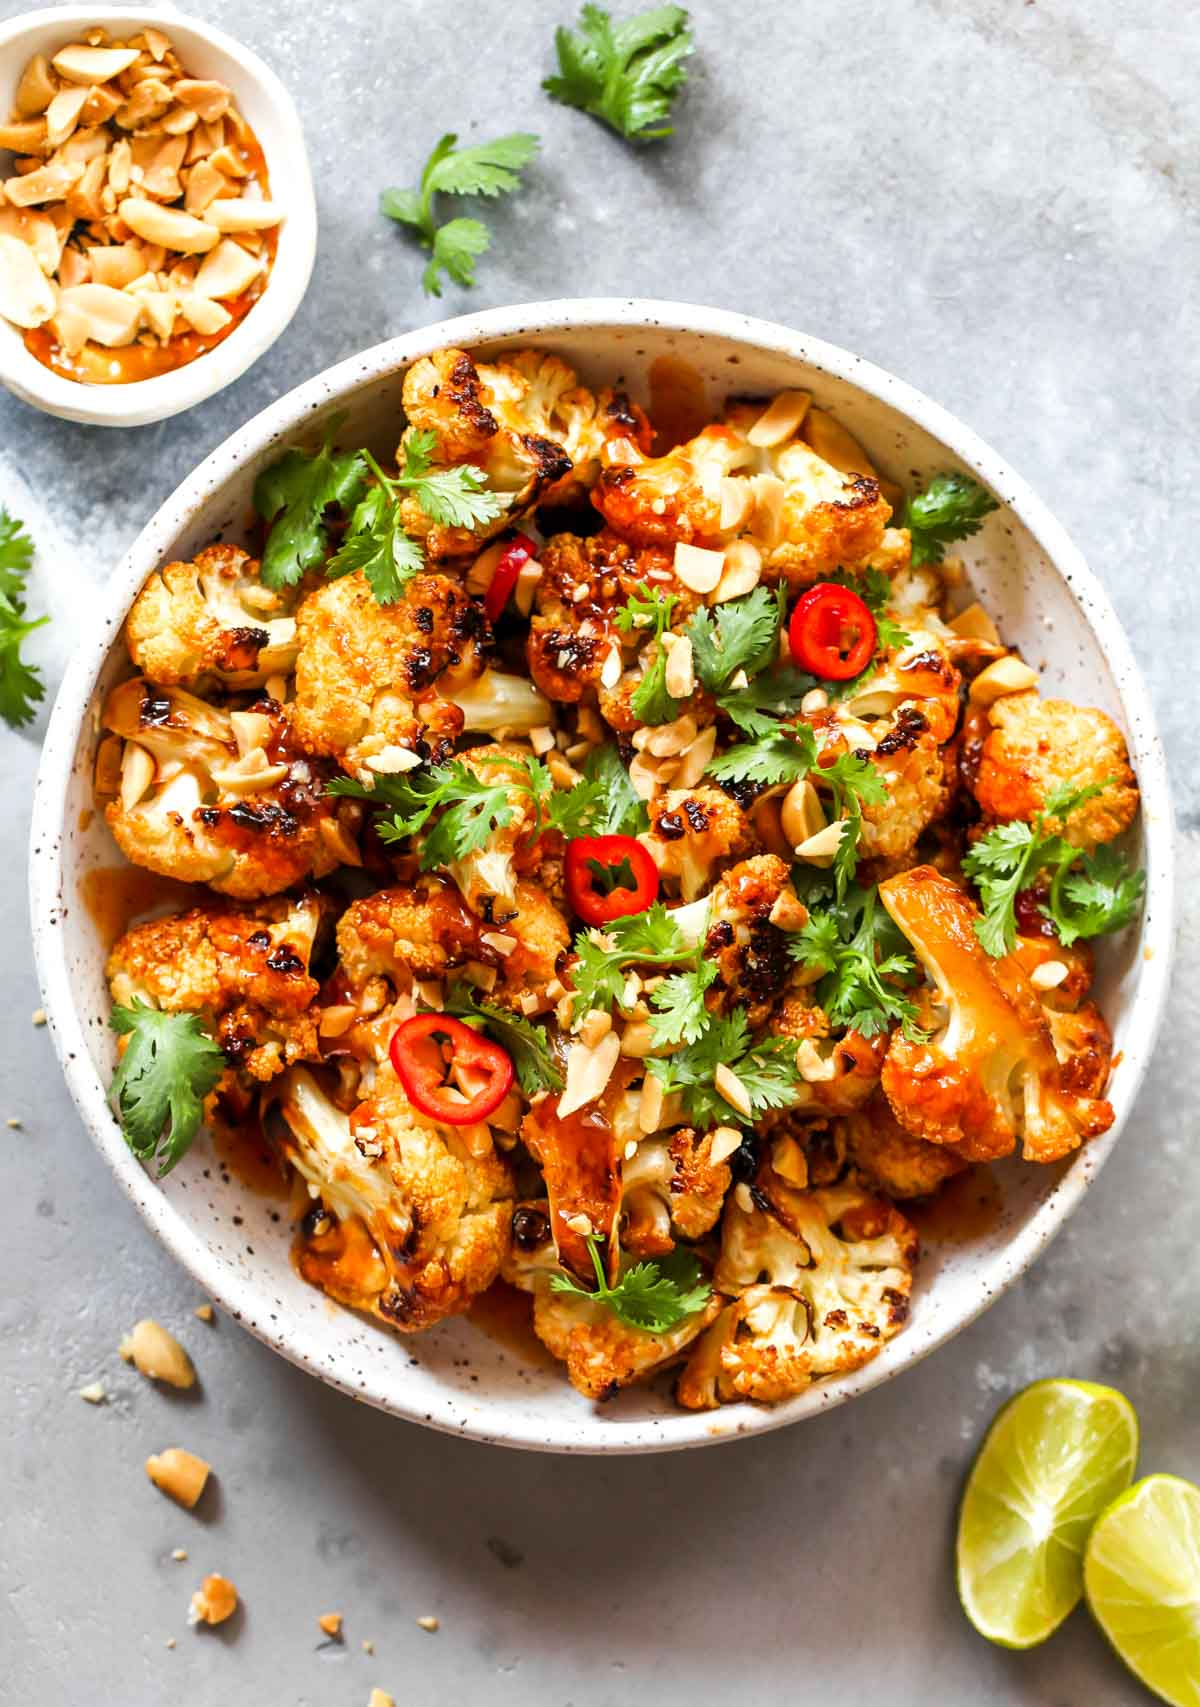 Roasted cauliflower topped with peanuts and cilantro in a white bowl